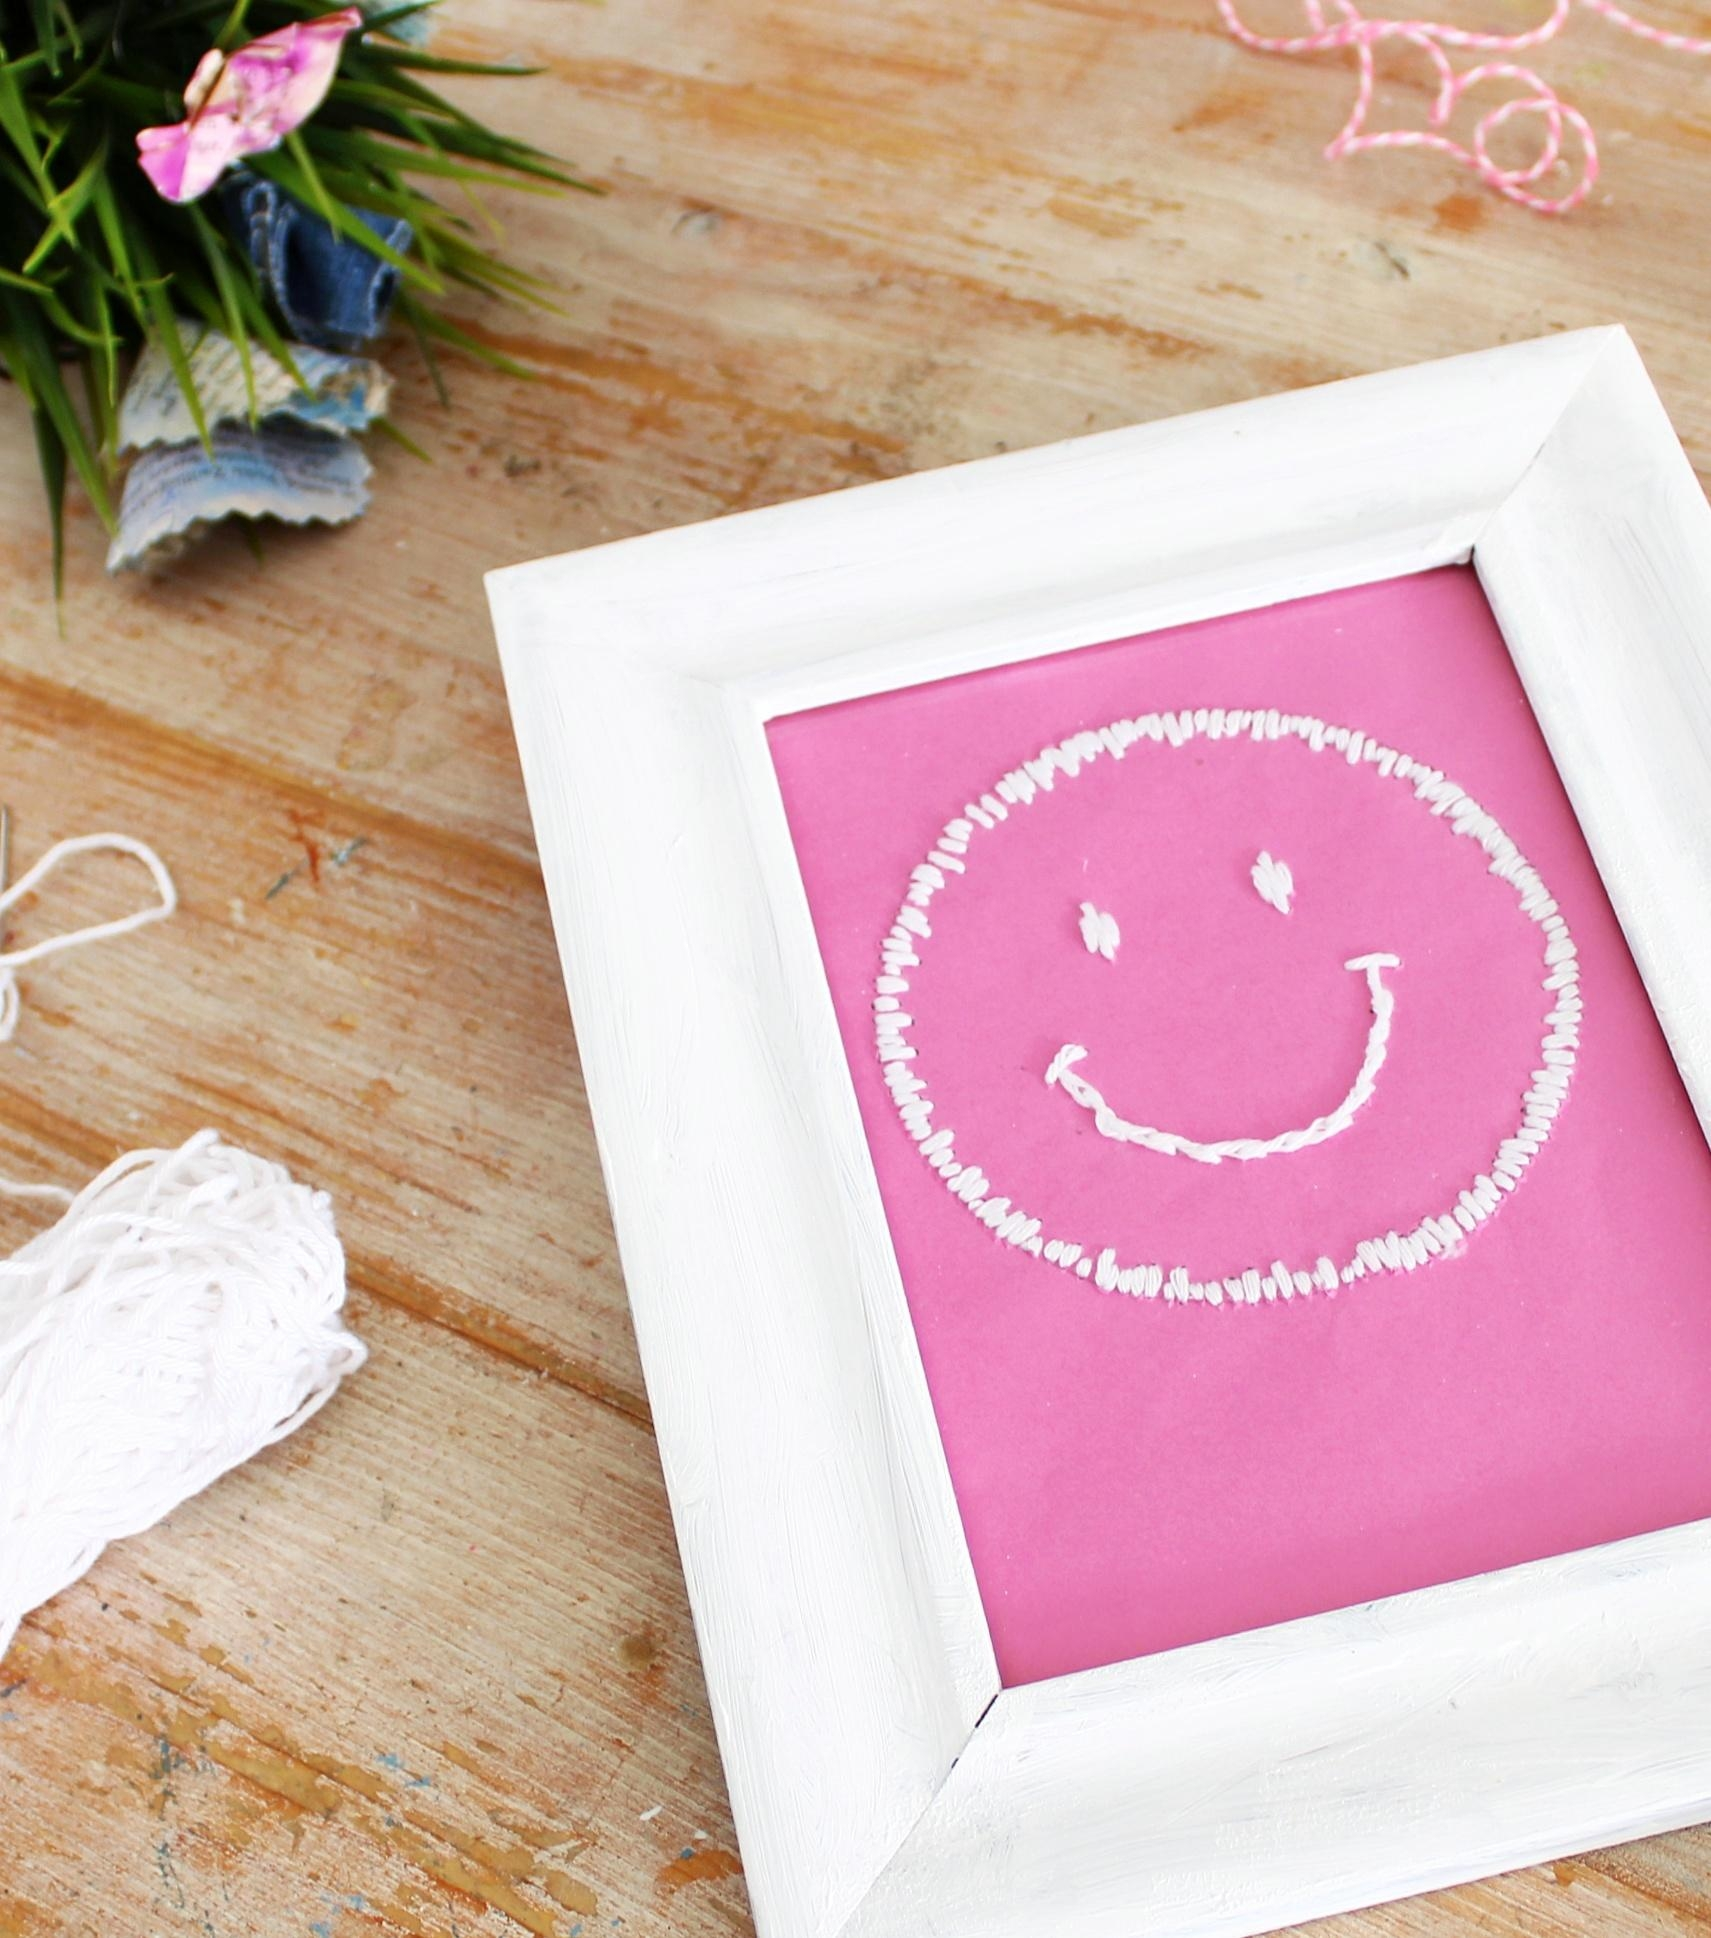 #smileeveryday #smiley #stickerei #geschenkidee